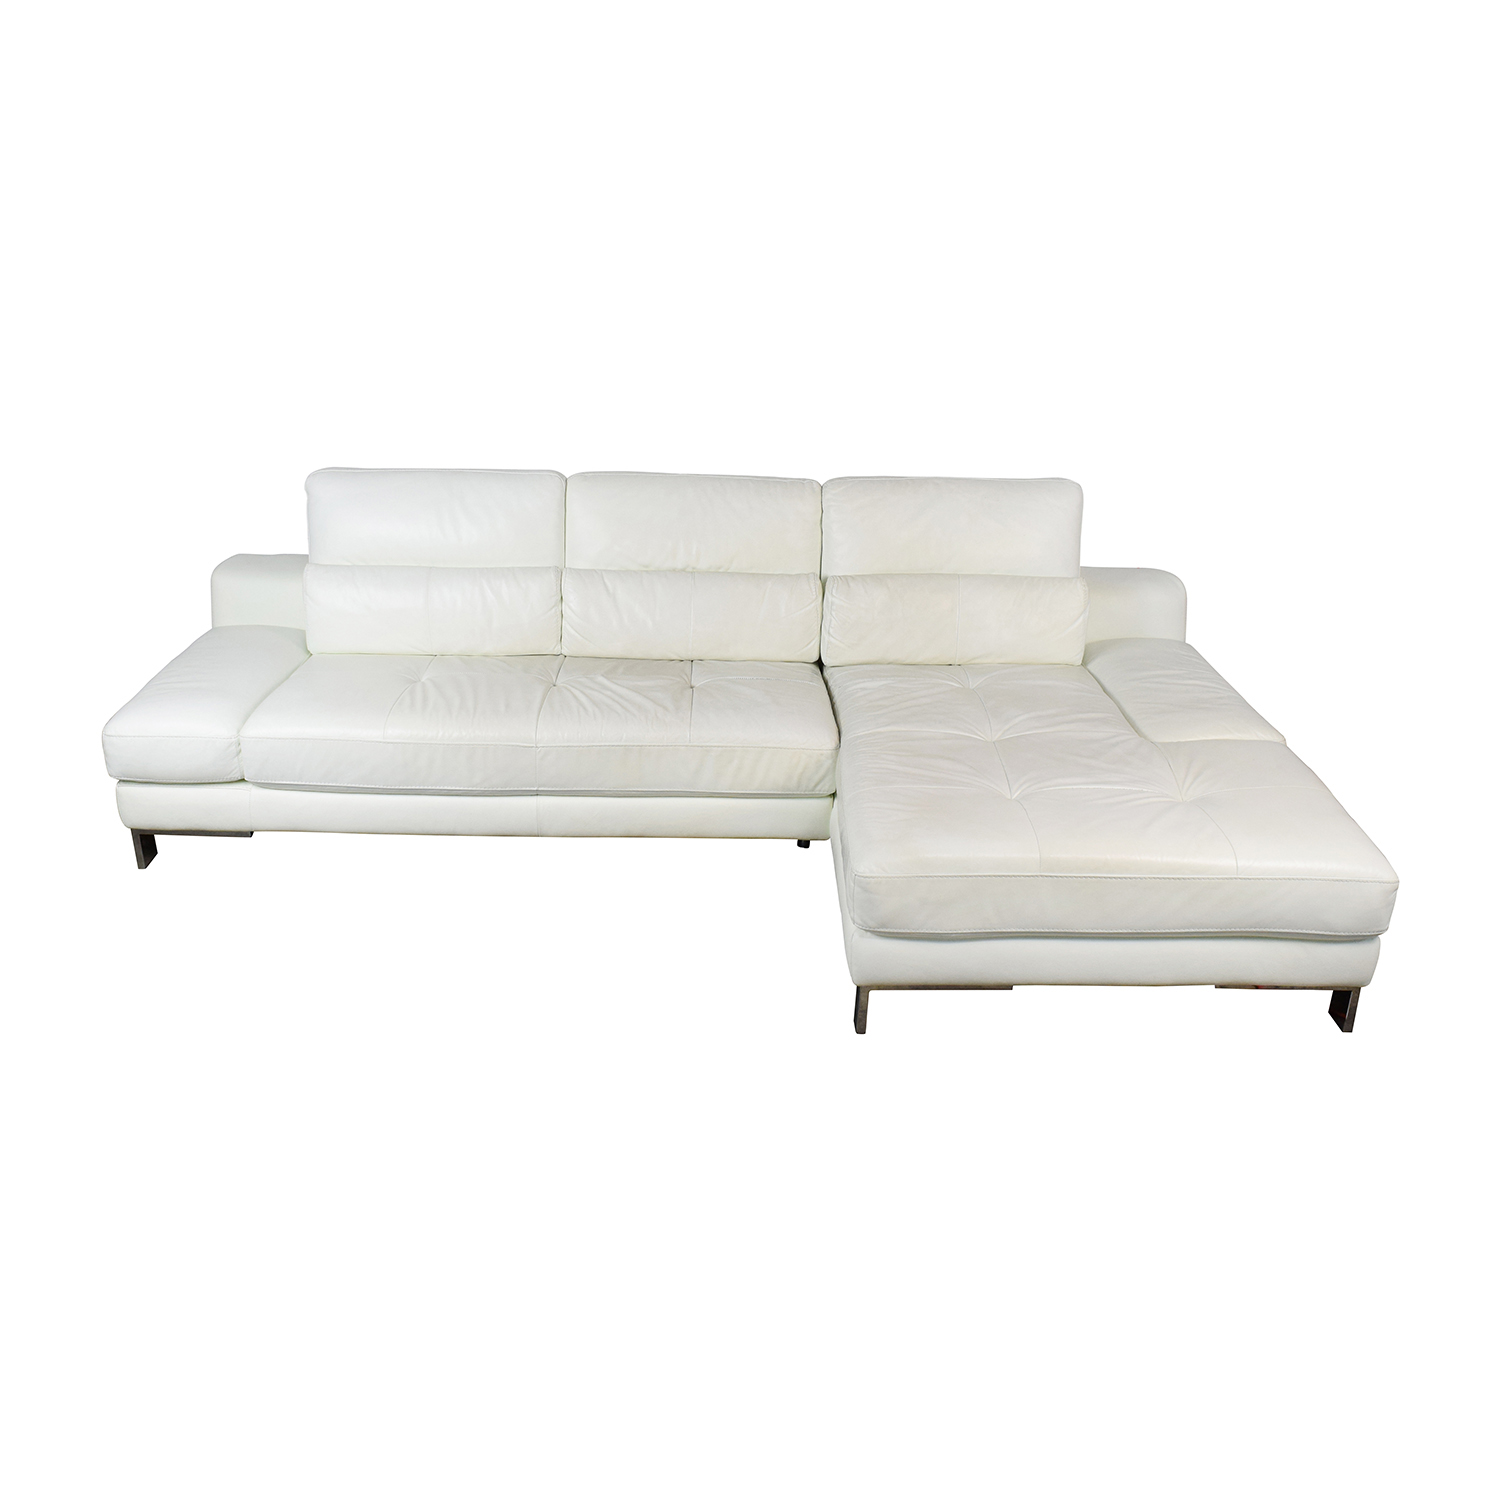 Mobilia Canada Mobilia Canada Funktion White Leather Sectional price